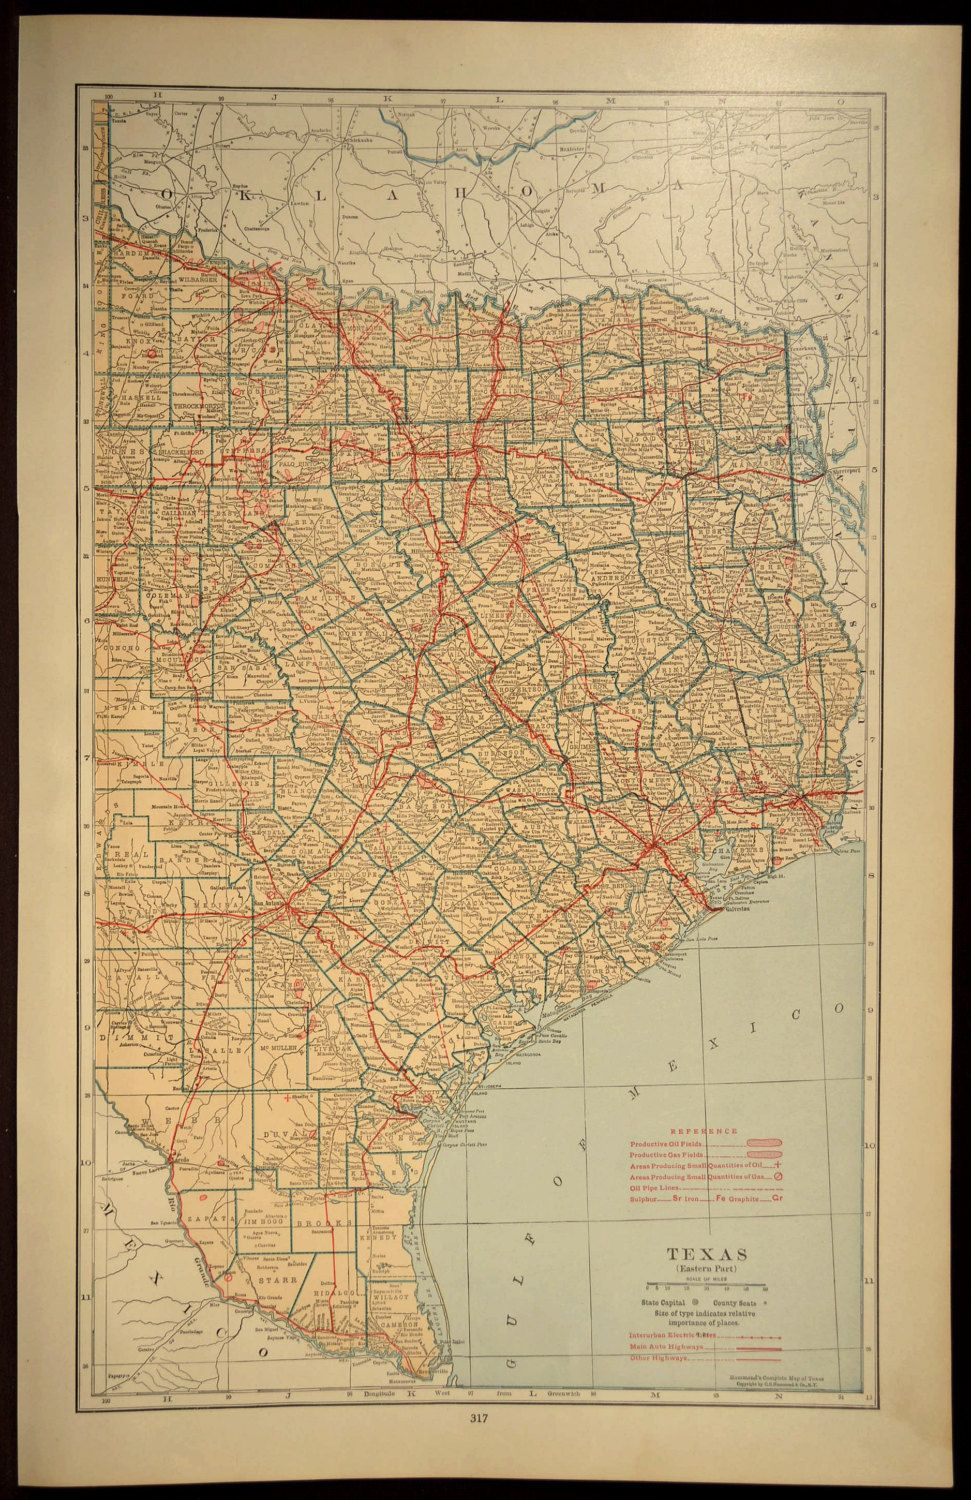 Texas Map of Texas Wall Decor Art Road Map LARGE East ... on religion maps of texas, antique nevada map, railroad map in texas, rare maps of texas, decorative maps of texas, antique alaska map, ancient maps of texas, antiques in texas, blue maps of texas, on a map of ja ranch texas, historical maps of san antonio texas, large print road maps texas, antique show round top texas, antique show round top map, rustic maps of texas, charts of texas, agriculture maps of texas, vintage texas, printable maps north texas,